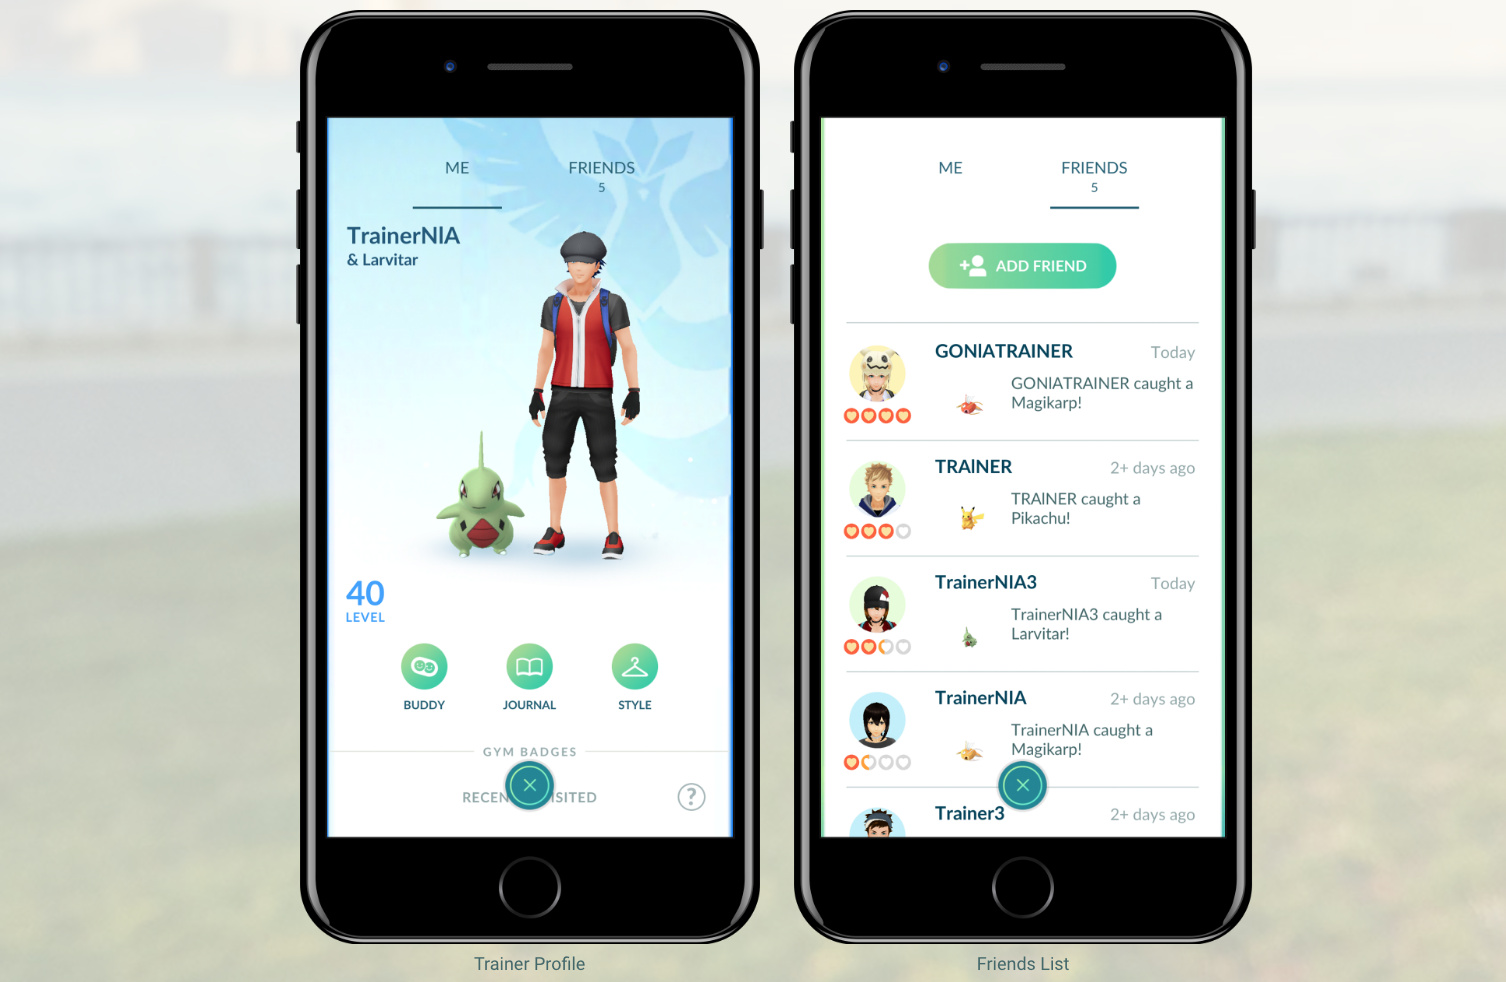 Trading is finally coming to Pokemon Go this week